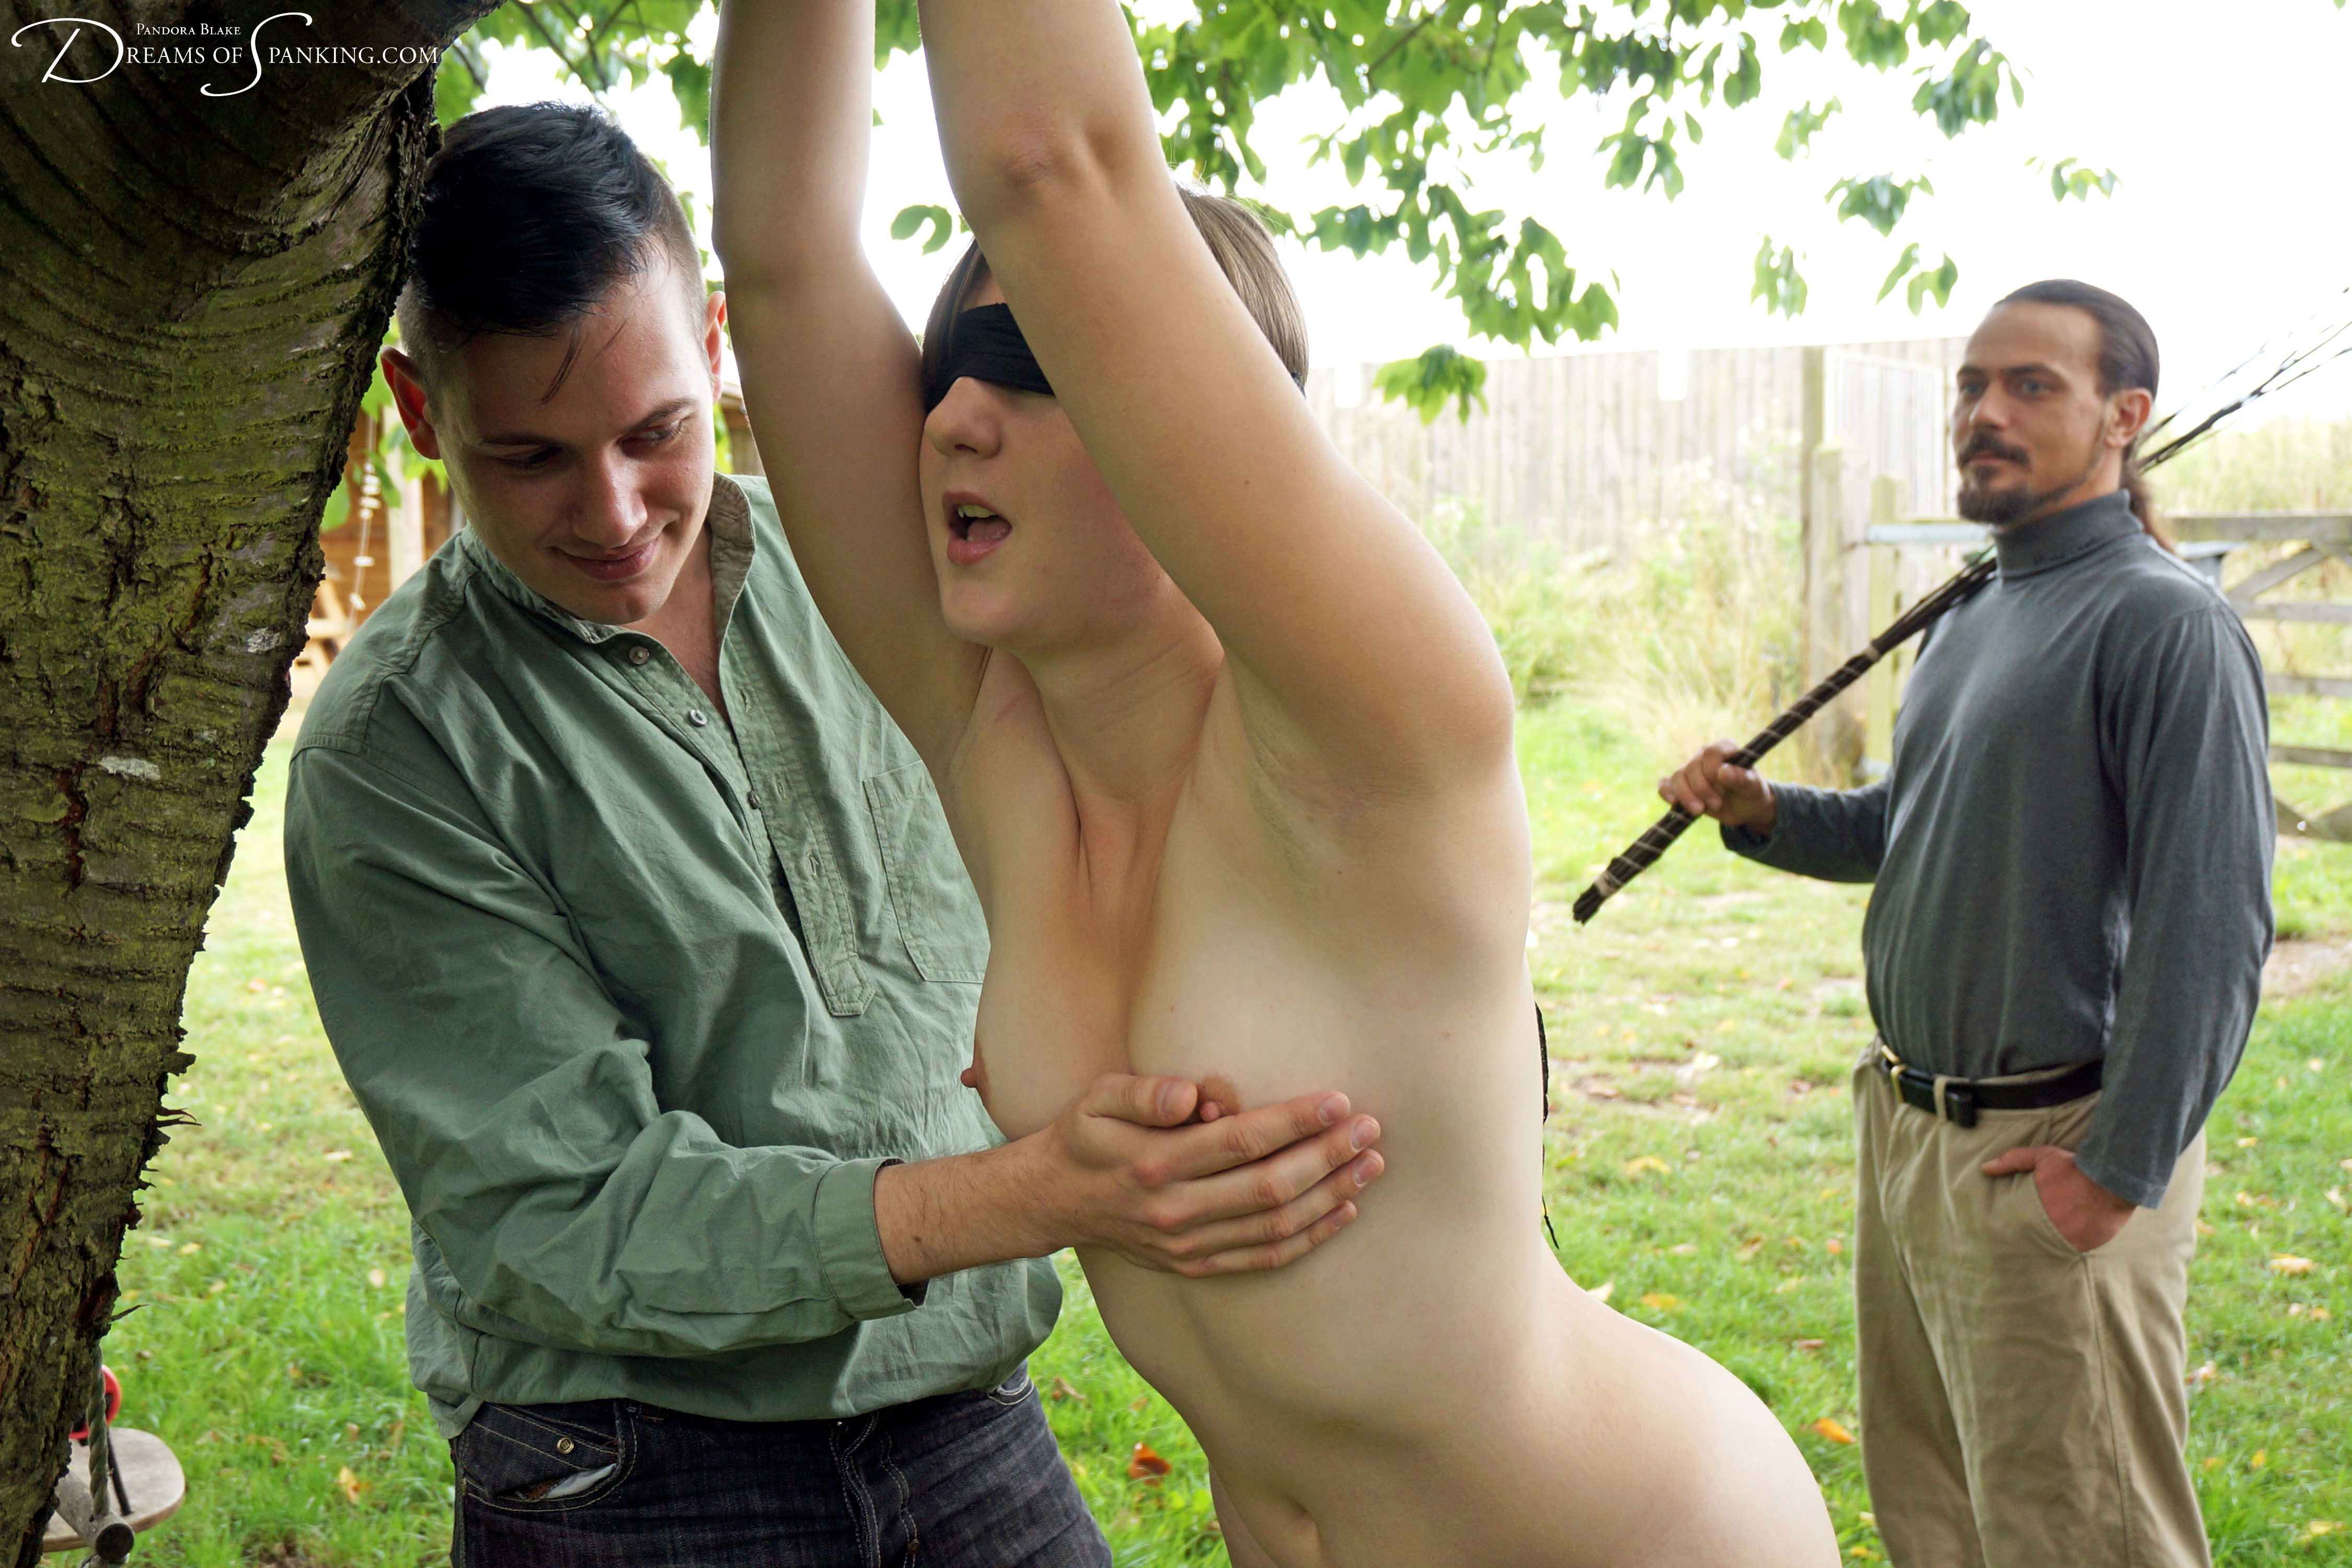 Pandora Blake is tied naked and punished in the garden at Dreams of Spanking